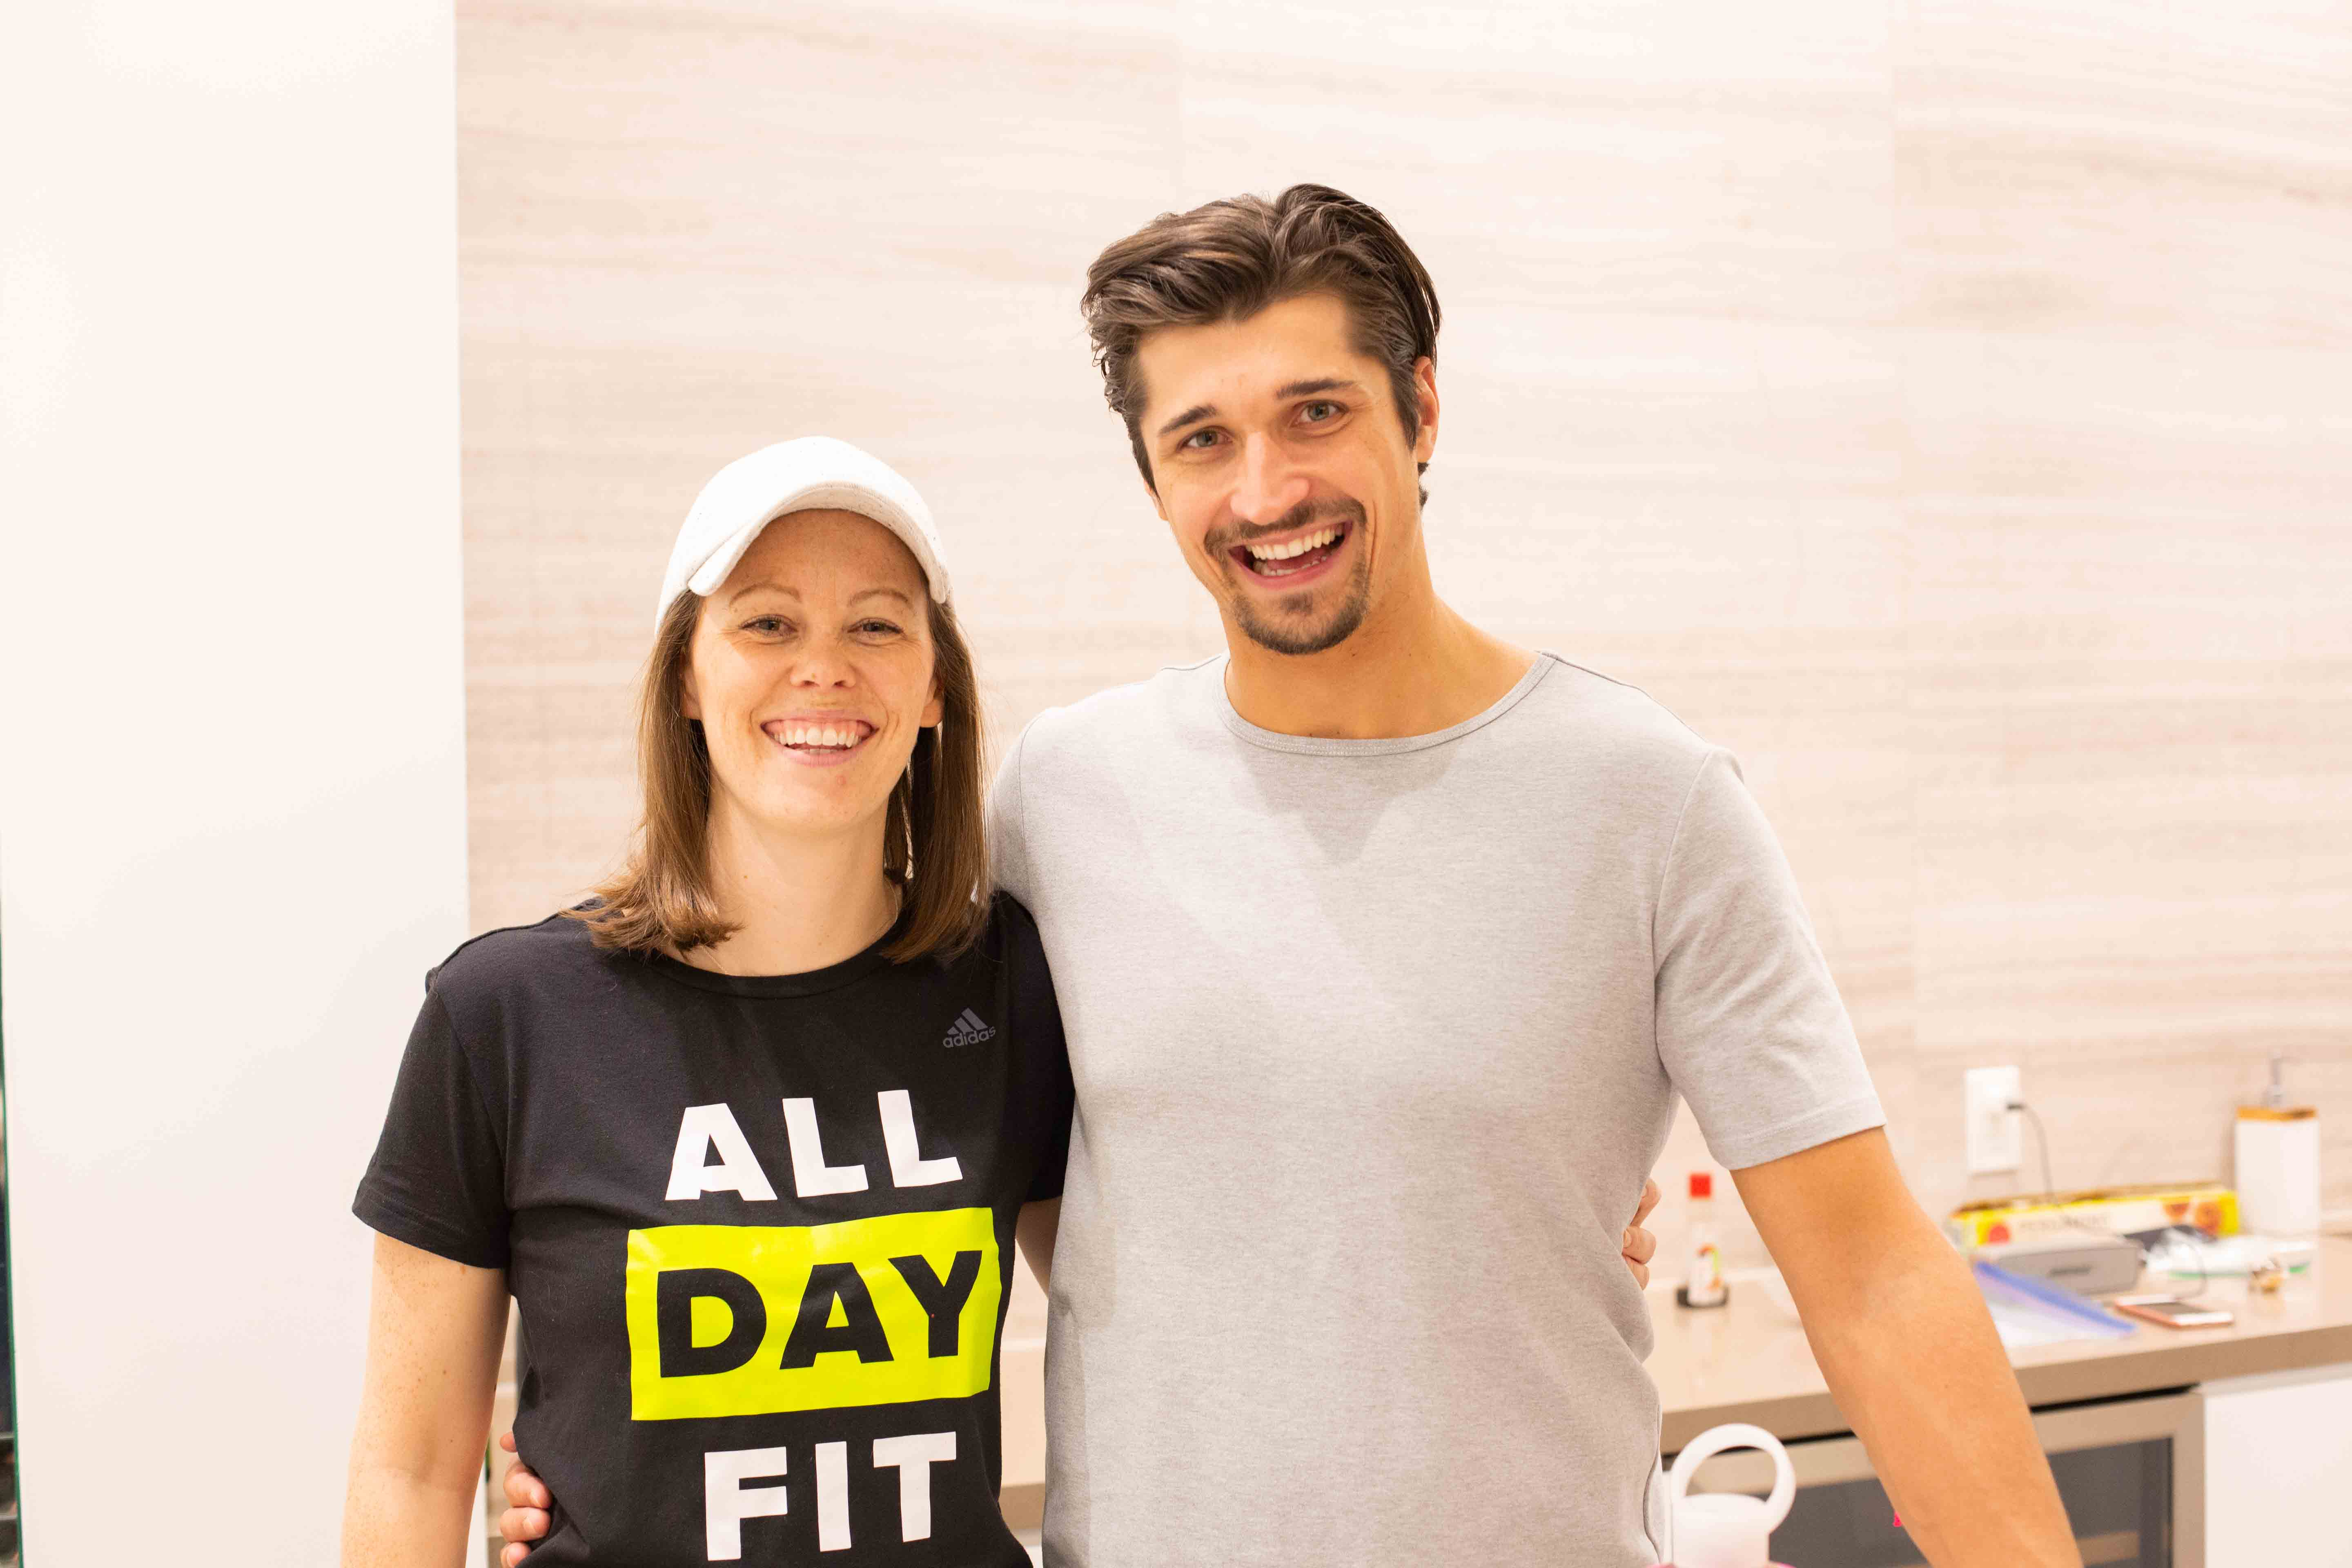 Baking-Workshop-All-Day-Fit